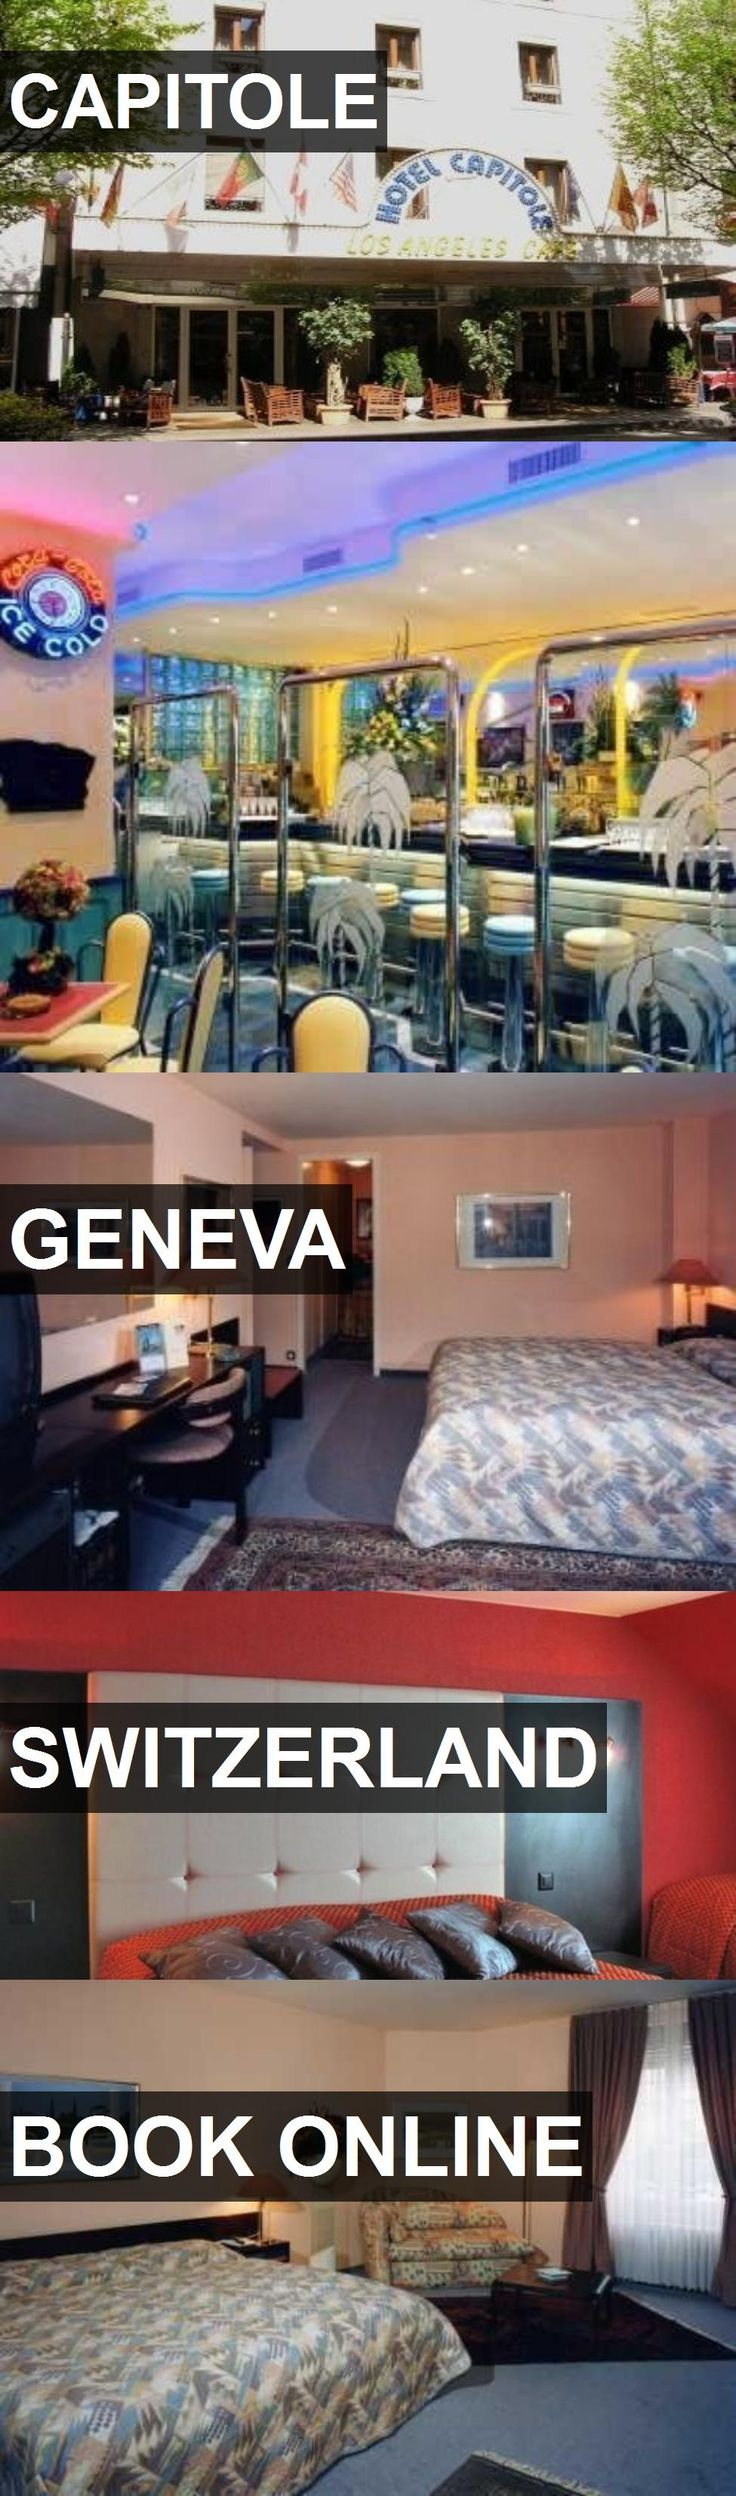 Hotel CAPITOLE in Geneva, Switzerland. For more information, photos, reviews and best prices please follow the link. #Switzerland #Geneva #travel #vacation #hotel